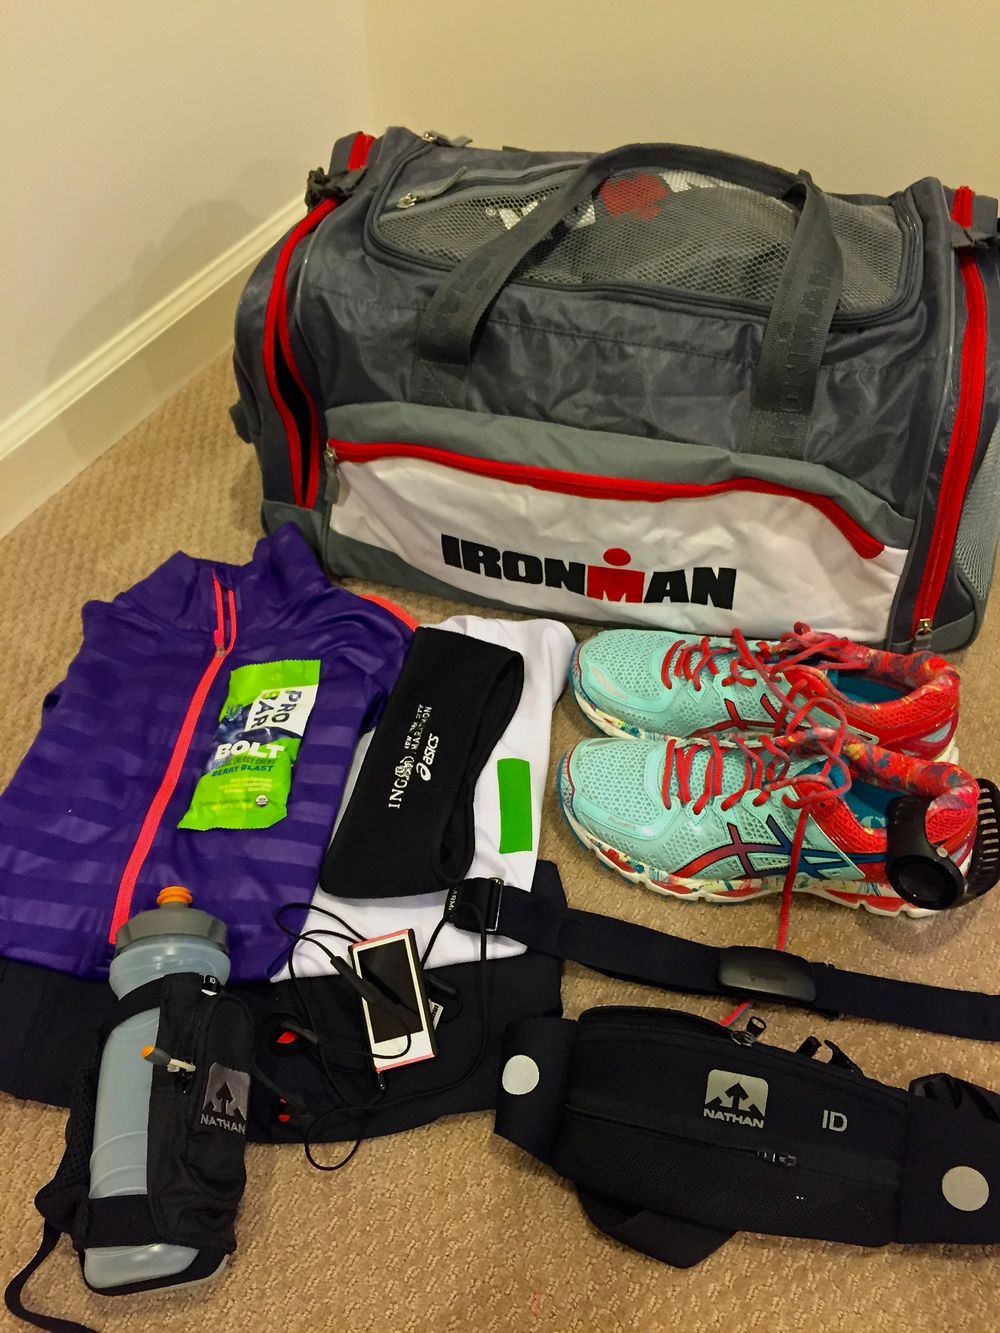 Gear all set for a long run that never came.